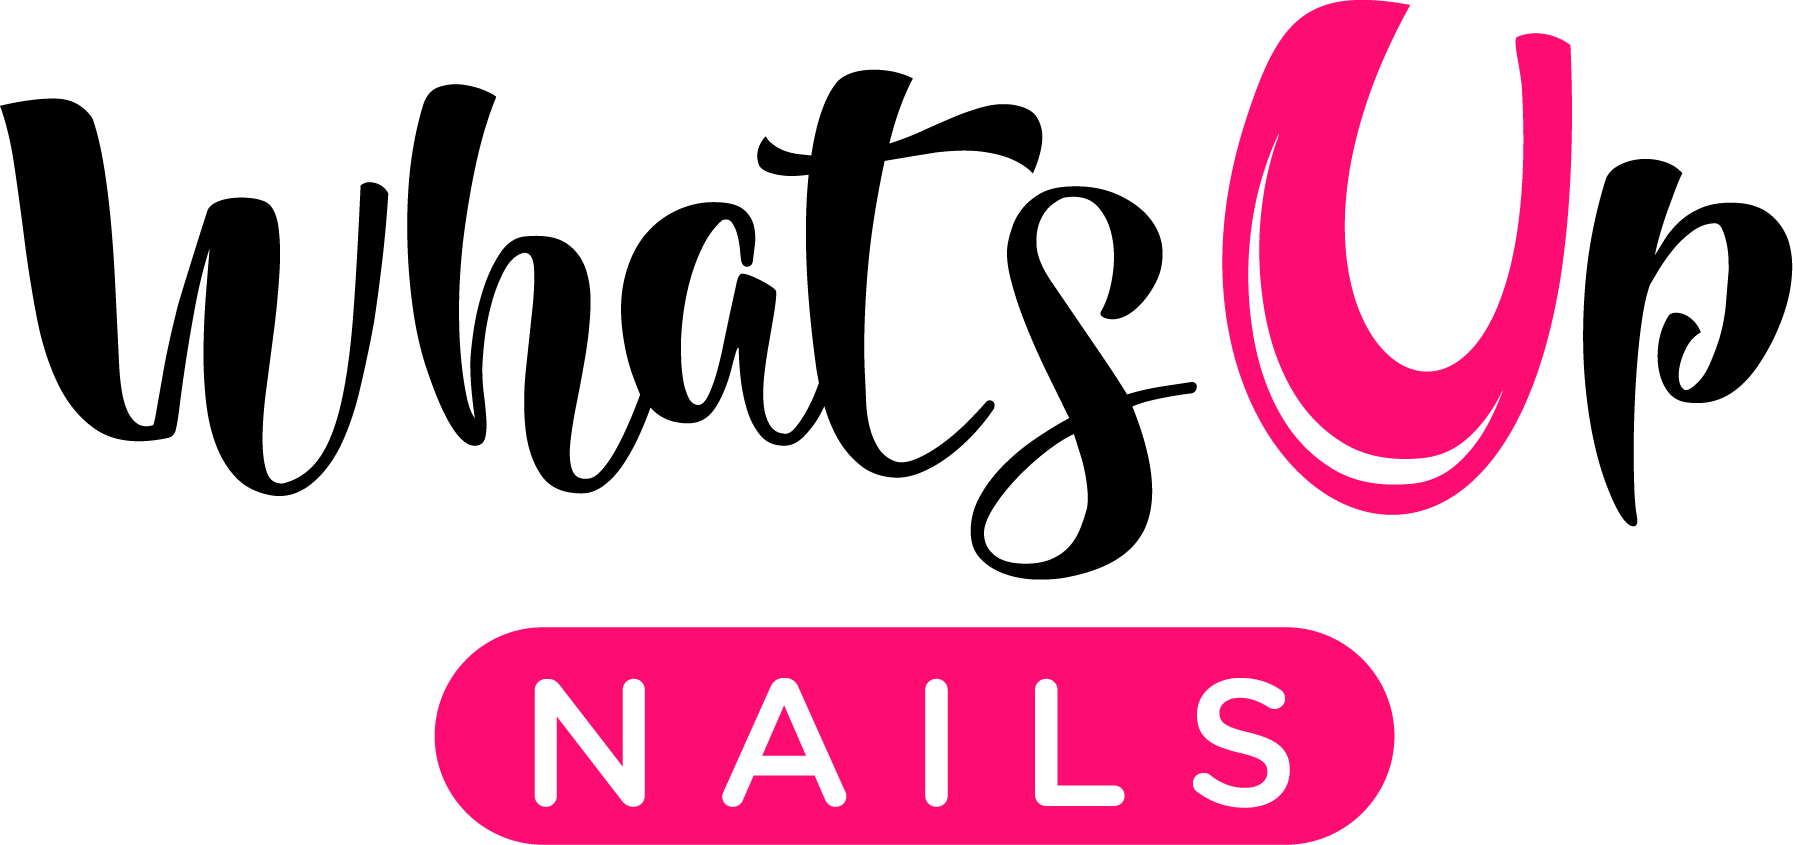 Whats Up Nails logo